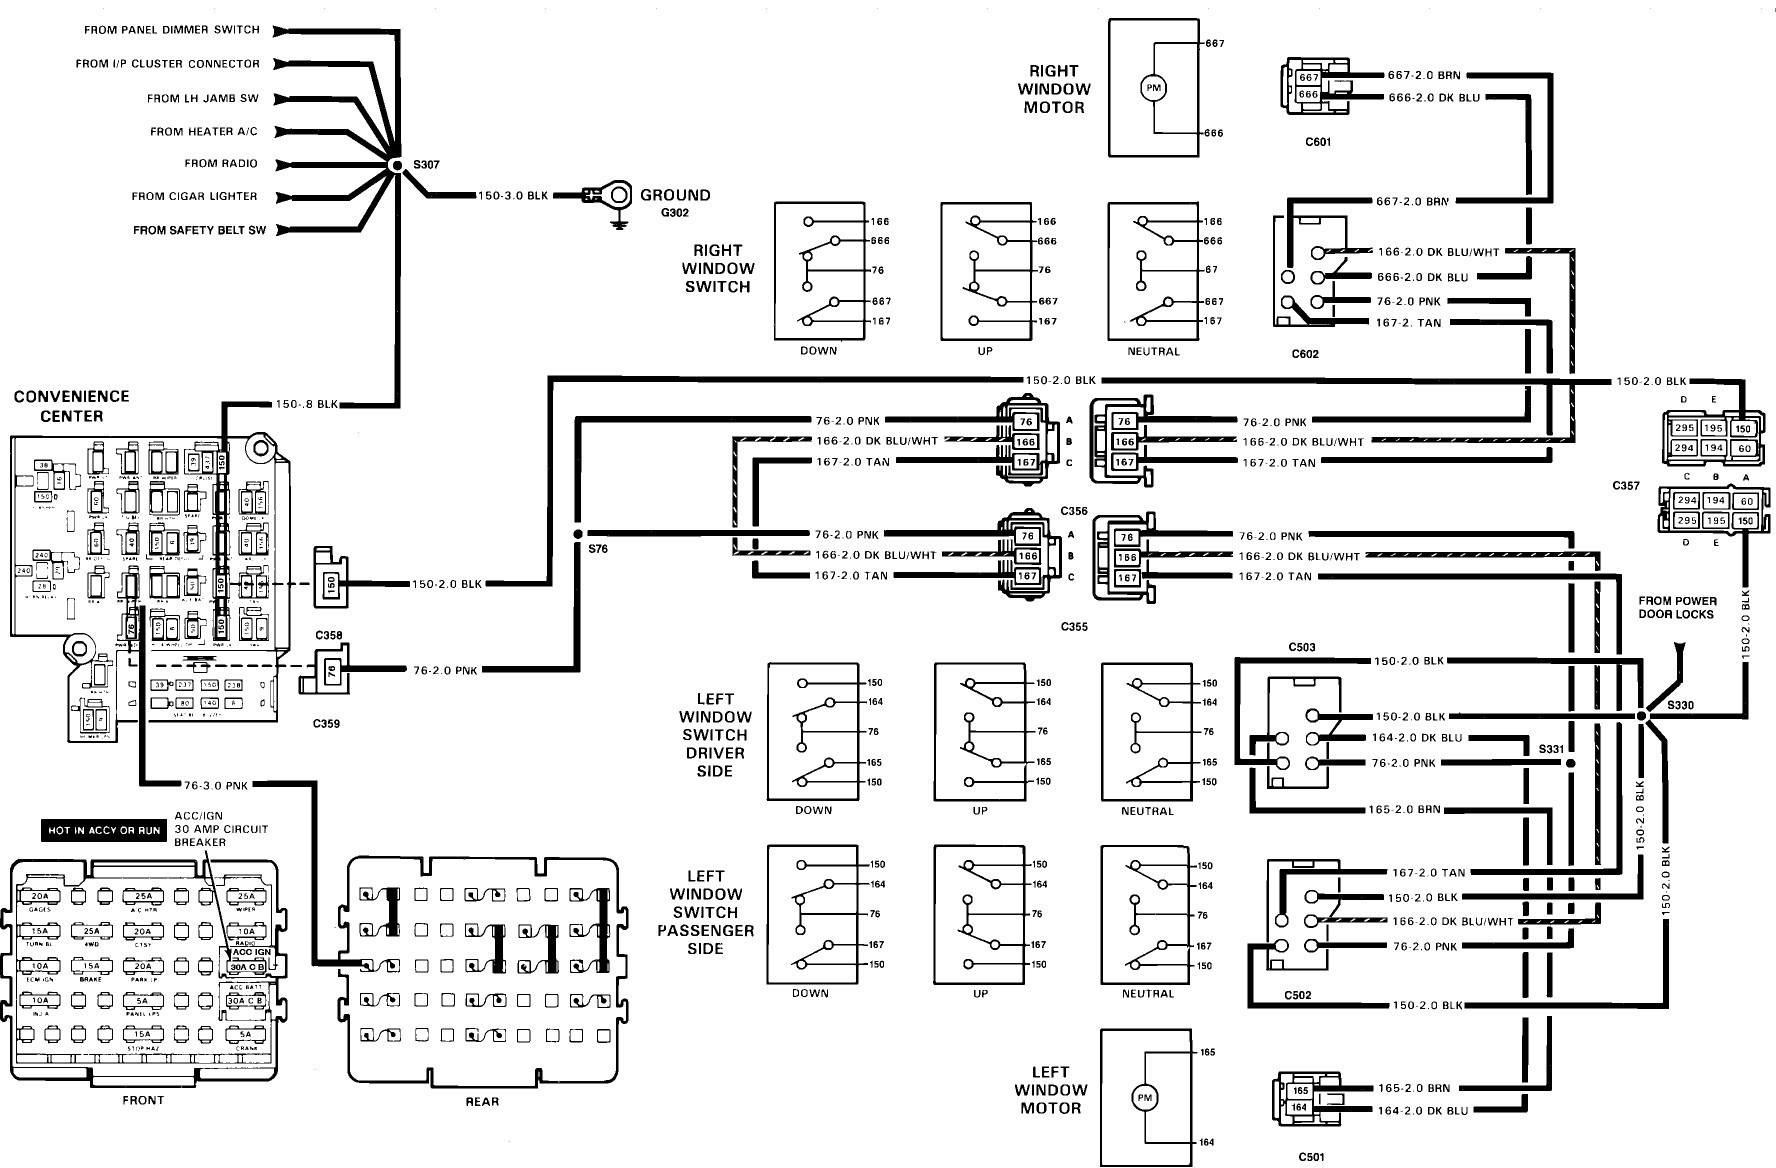 2000 Chevy Suburban Radio Wiring Diagram Schematic Diagrams Venture Stereo 1991 Easy To Read U2022 2003